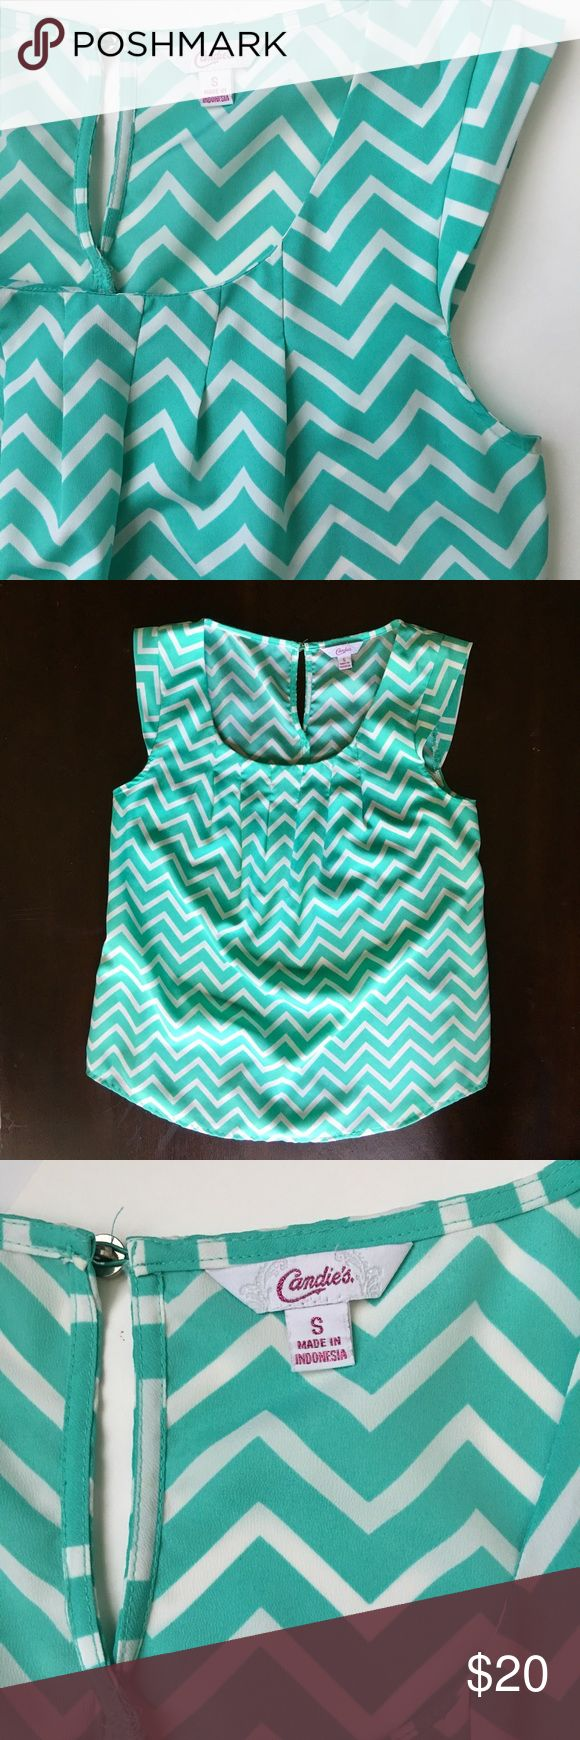 Candie's sleeves chevron blouse Candie's sleeves chevron blouse. Aqua/green. Very comfortable polyester material. Can wear with dress pants for work or jeans & shorts for casual wear. Size small. Tops Tank Tops